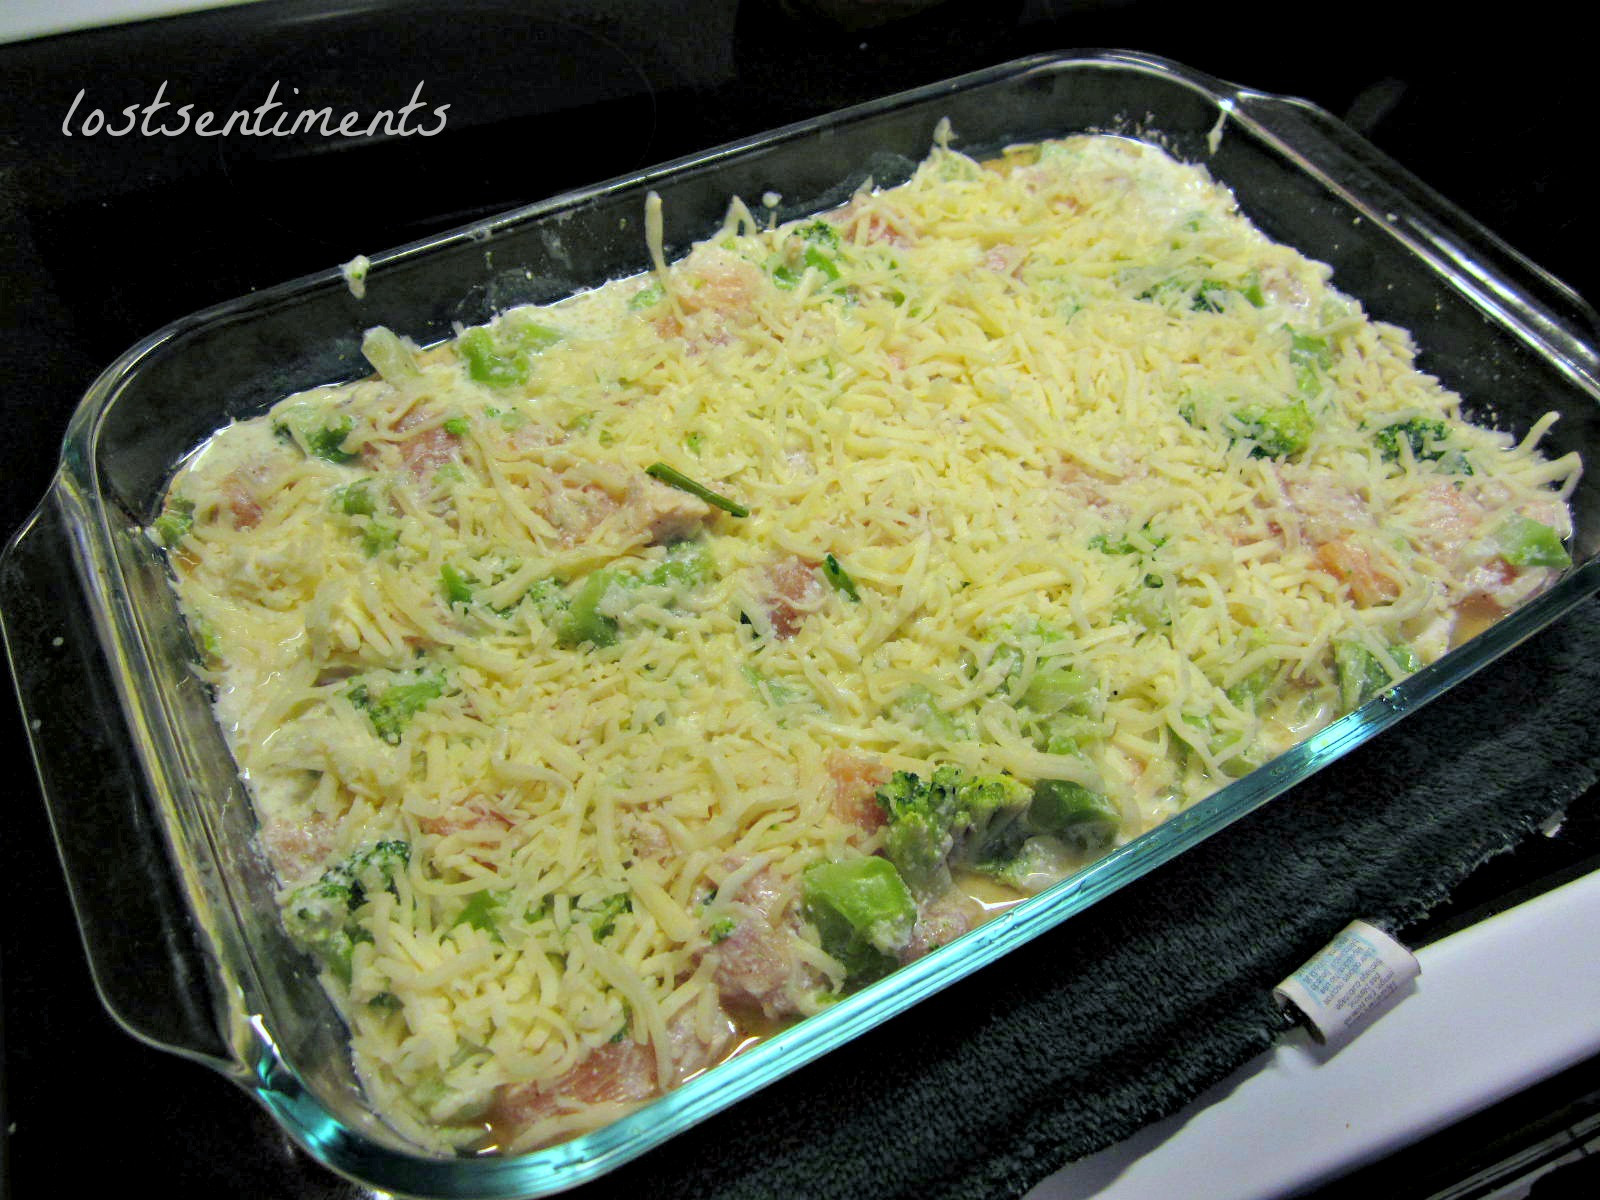 Low Carb Chicken And Broccoli Casserole  lostsentiments Chicken and Broccoli Cheesy Casserole